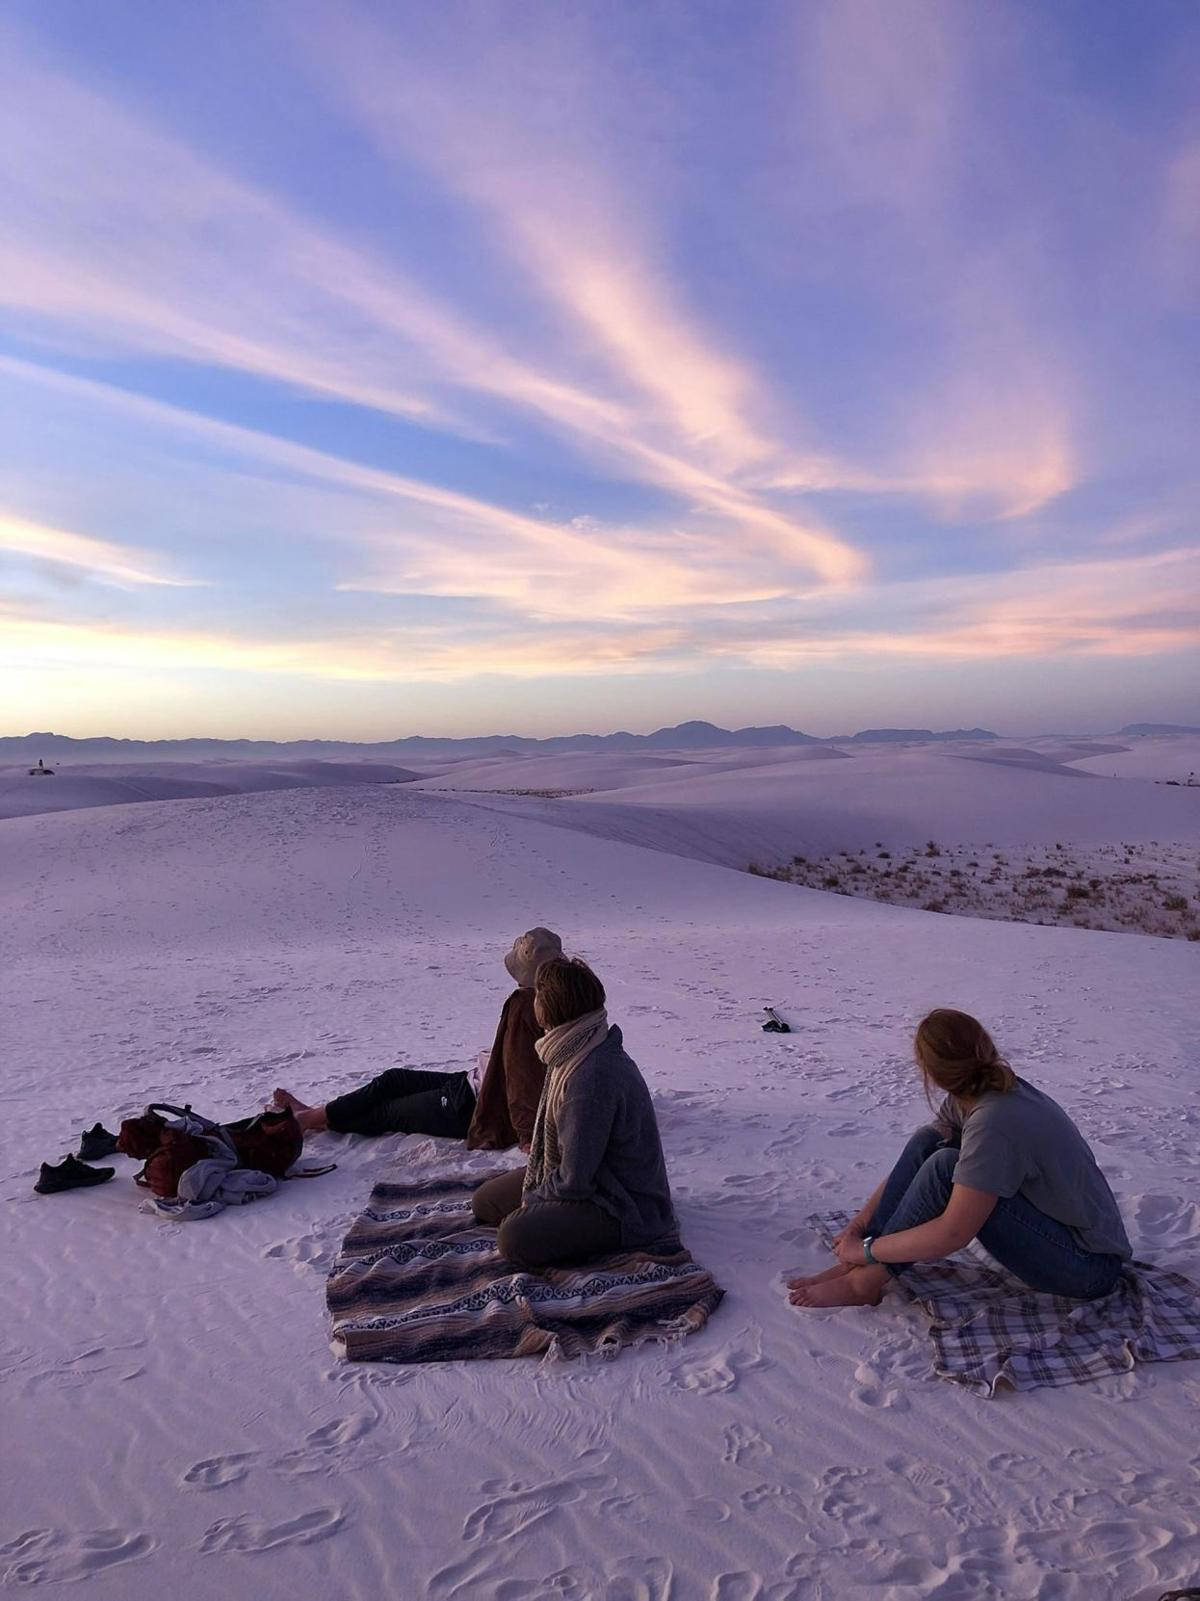 Campers catch the sunset on top of the dunes.